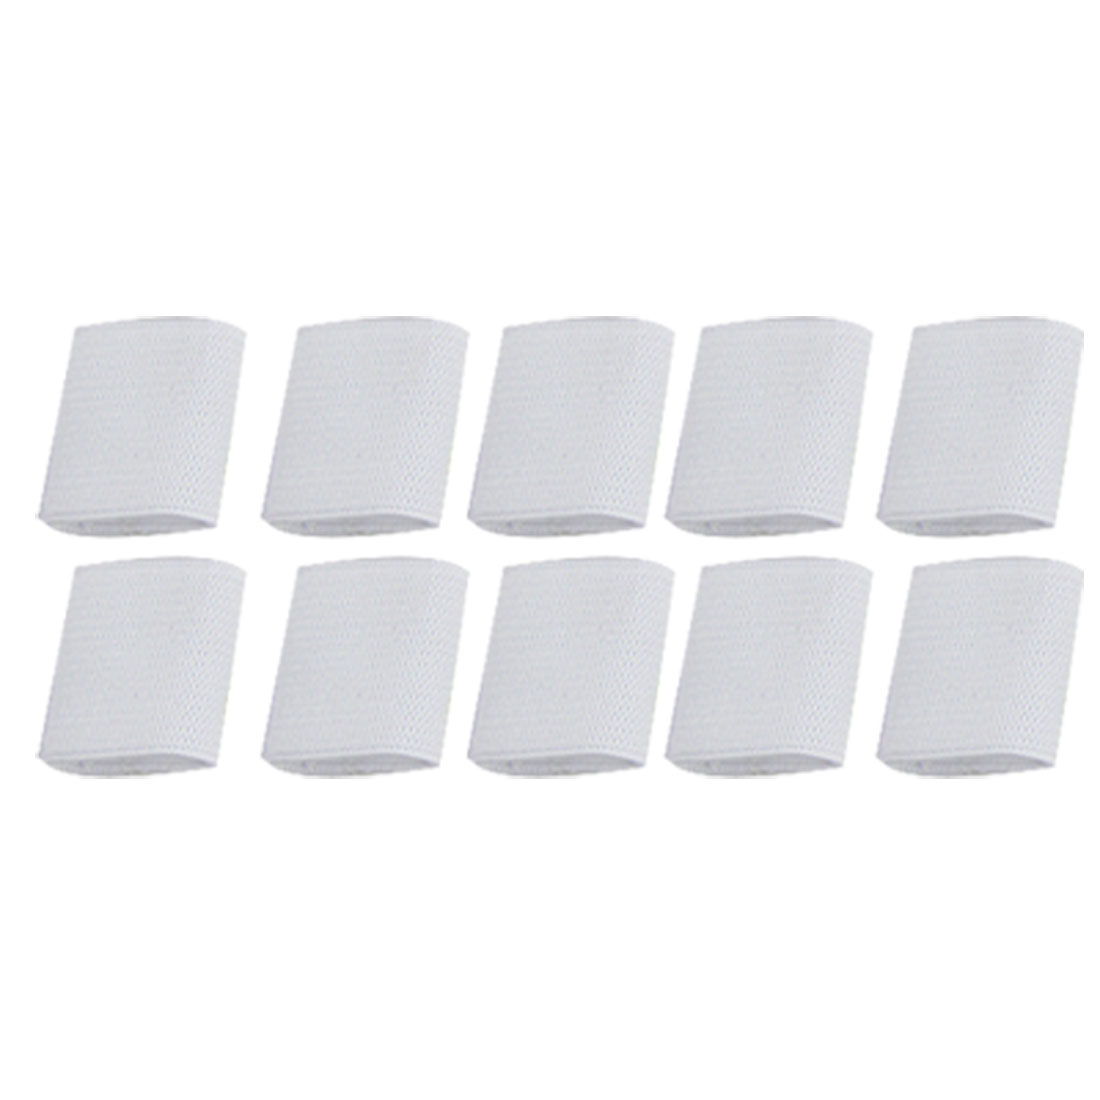 Volleyball White Elastic Finger Sleeve Sports Protector 10 Pcs